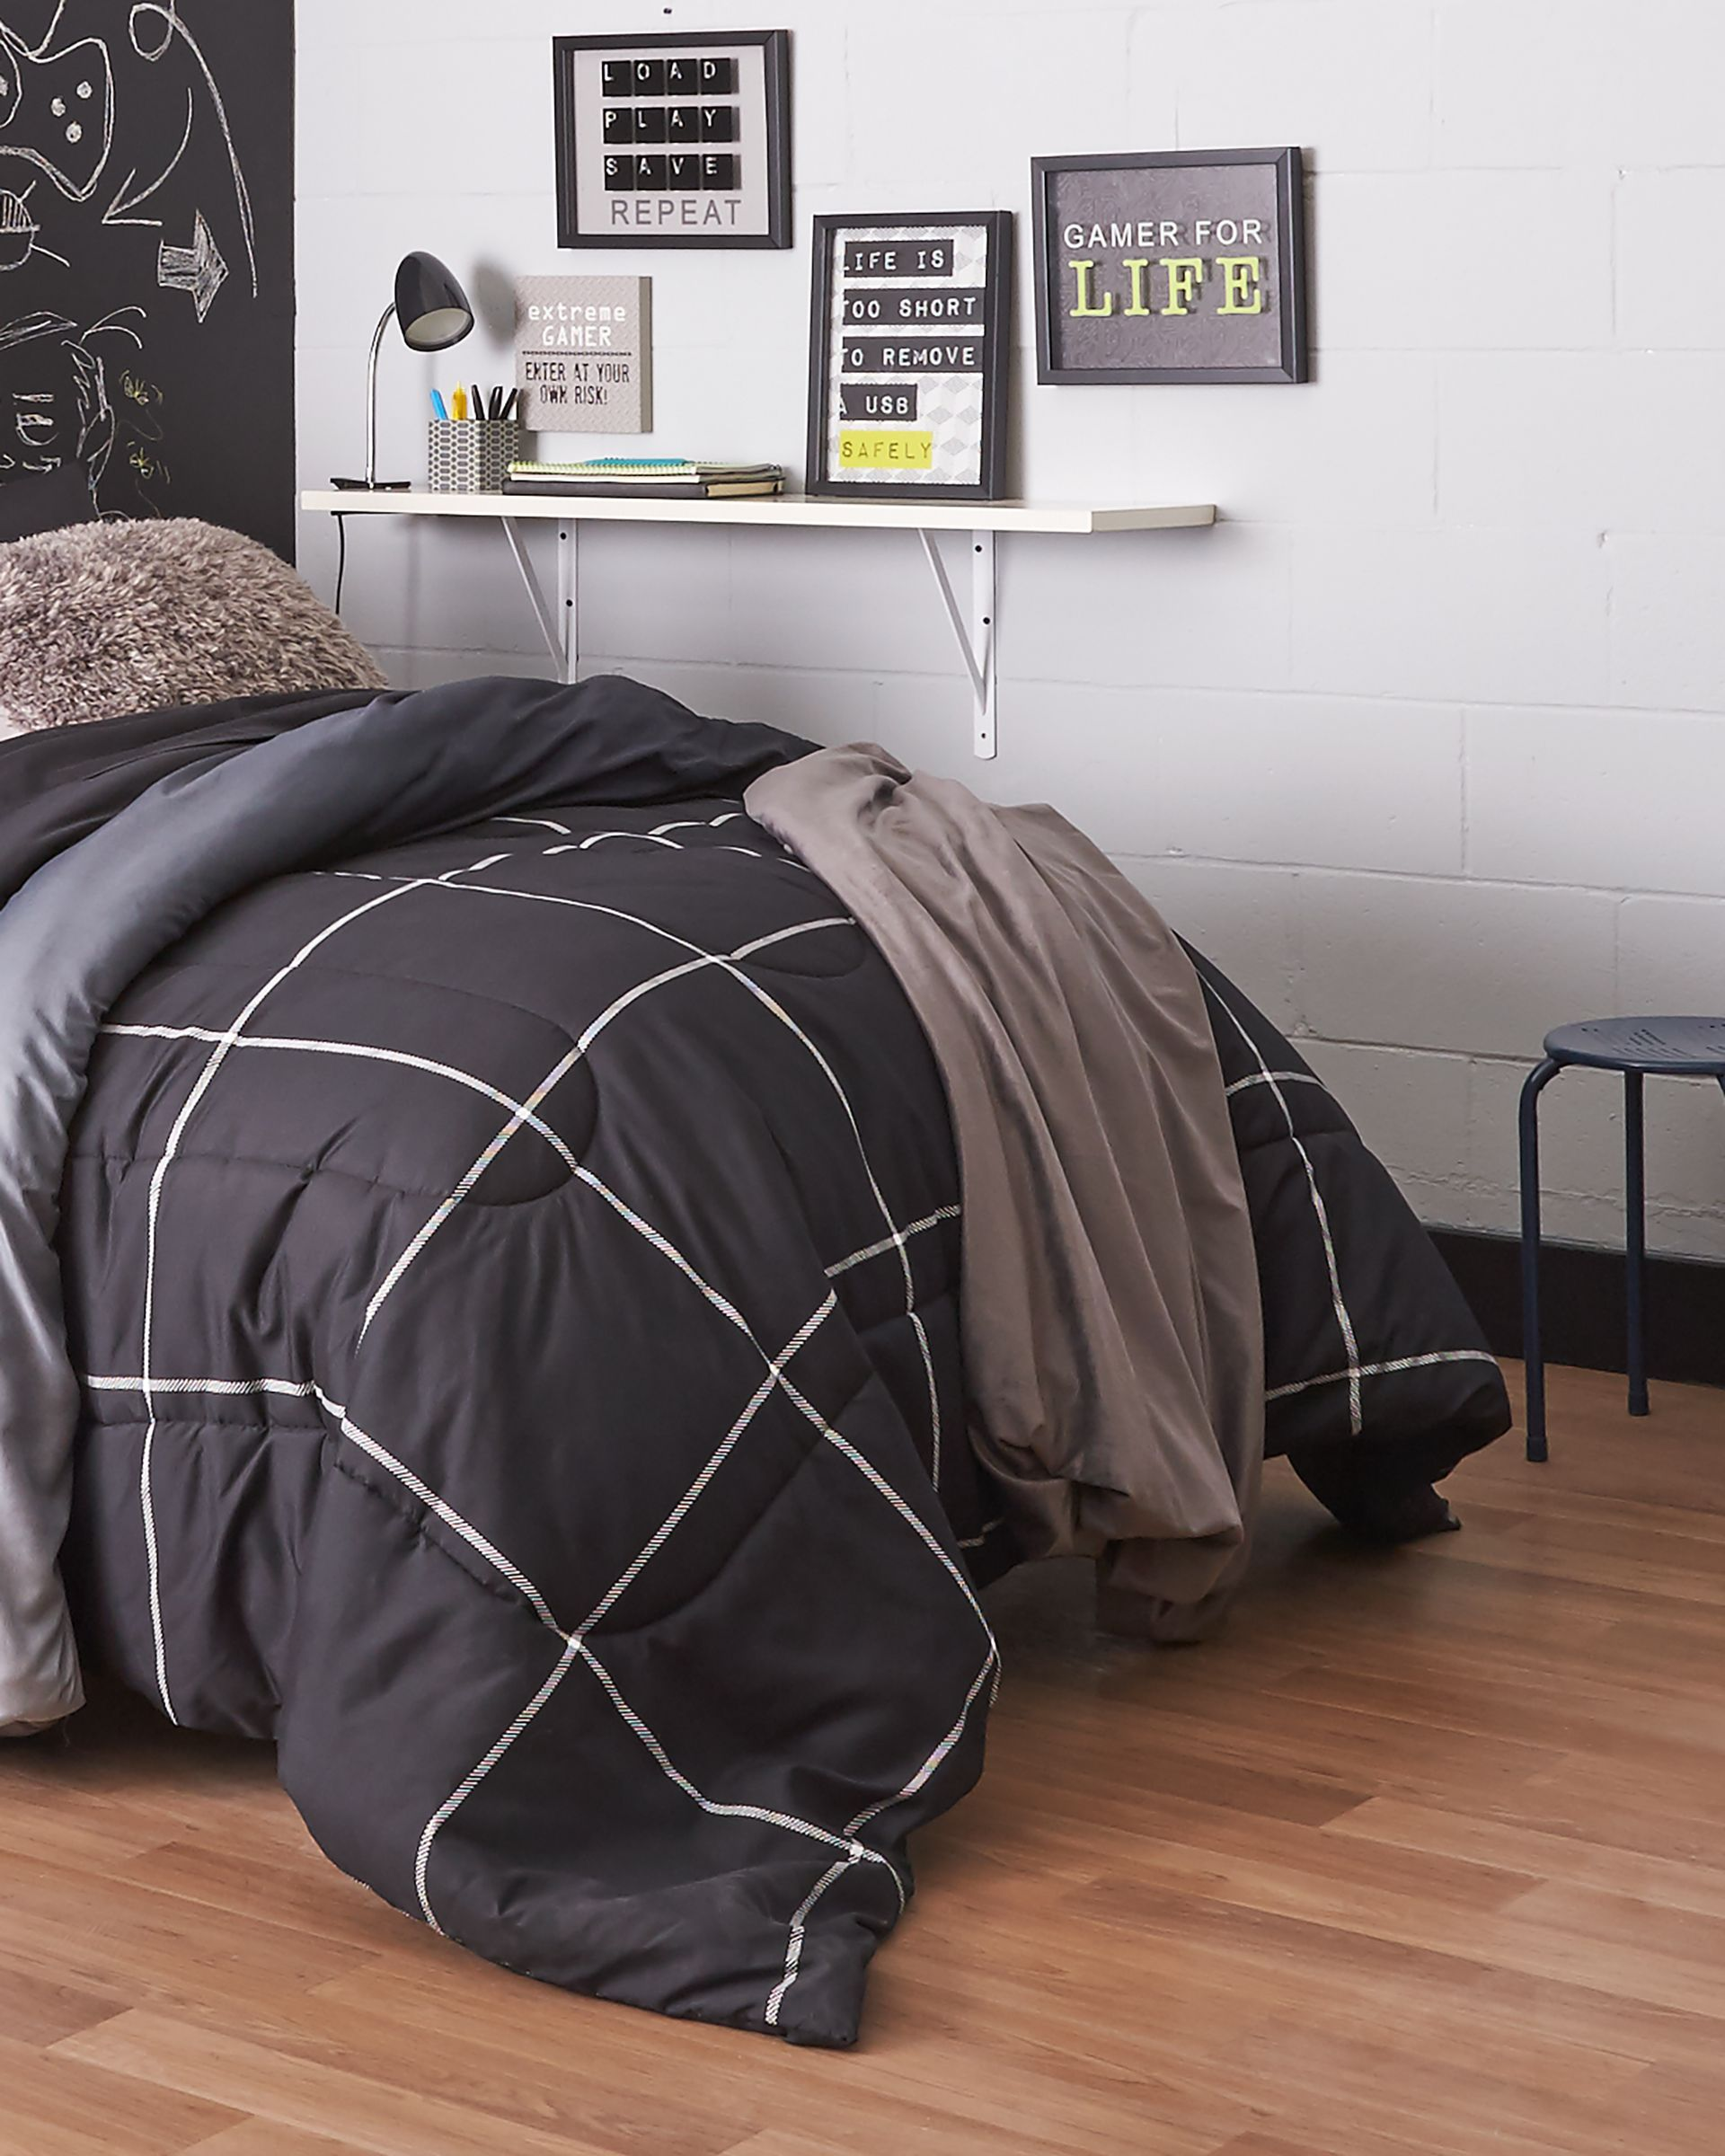 Level up your dorm with our everyday low prices!